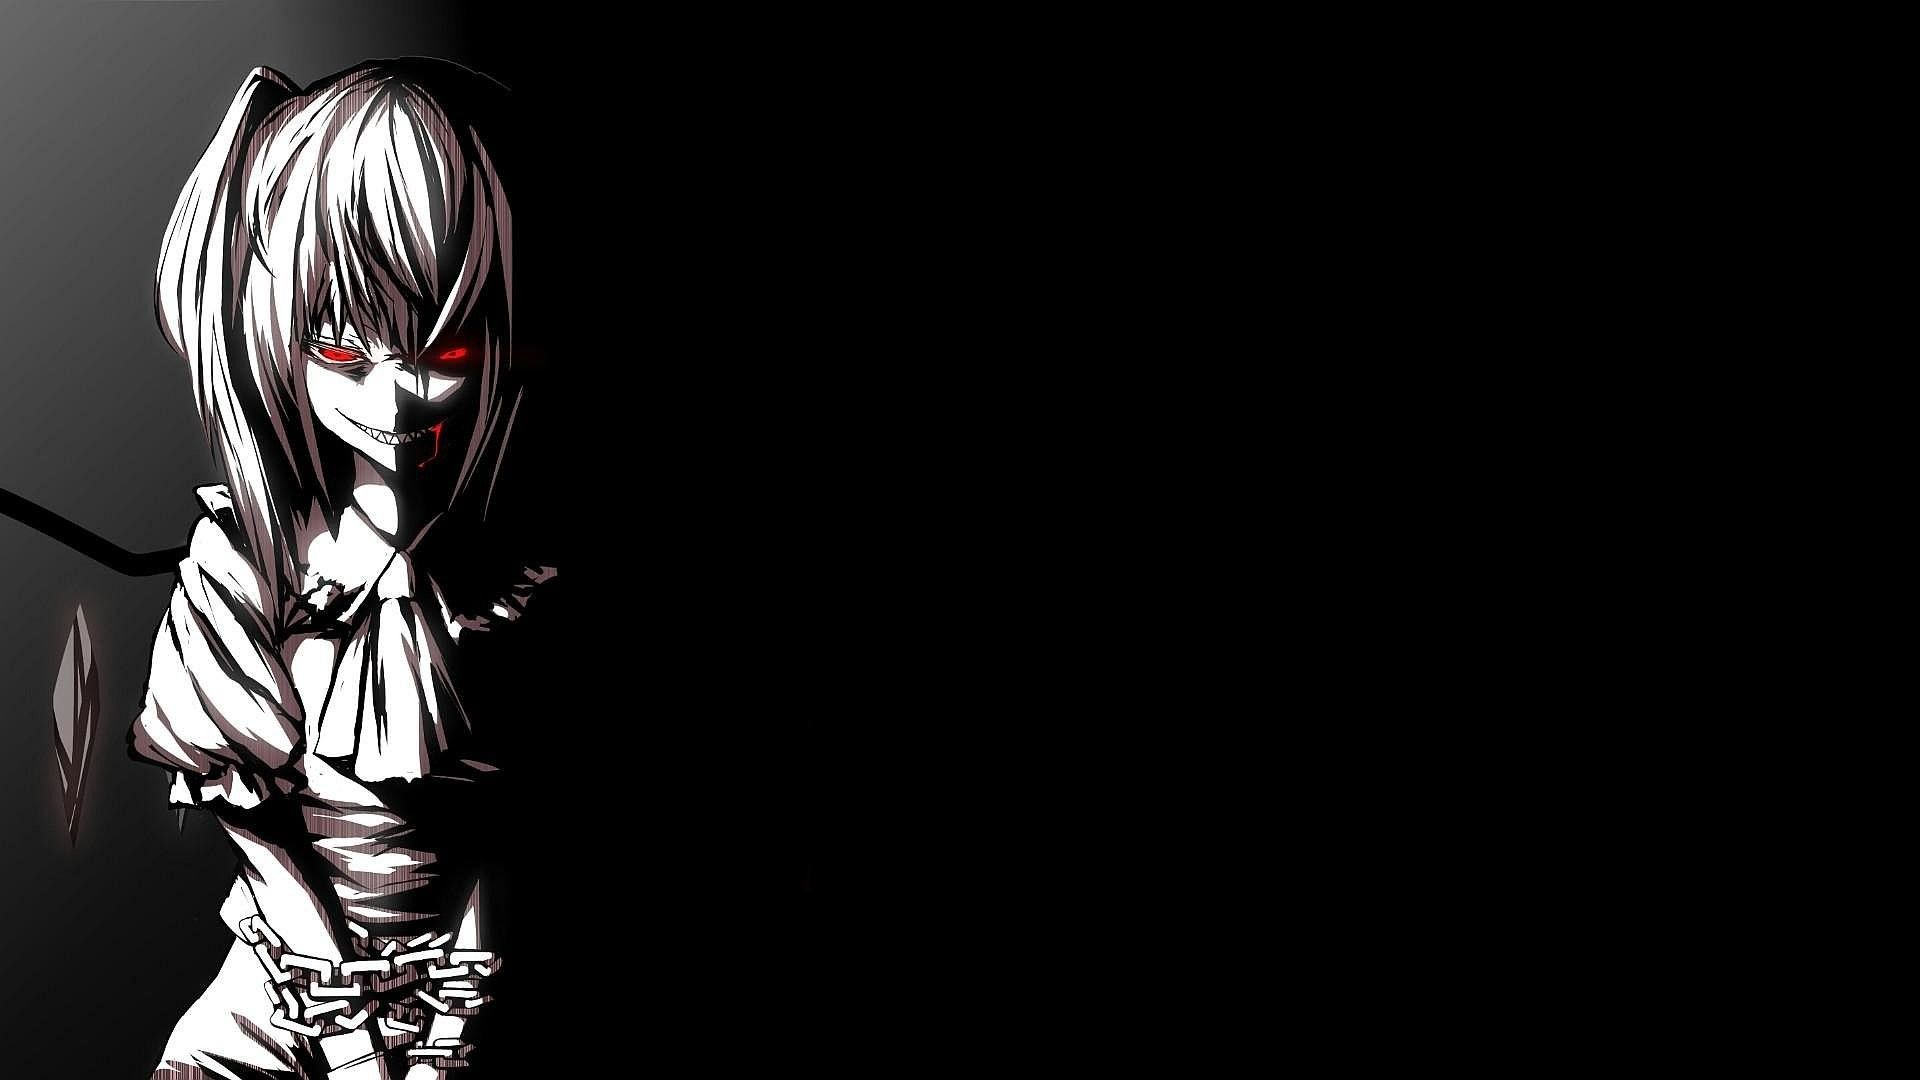 1920x1080 Creepy Anime Wallpaper (58+ images)